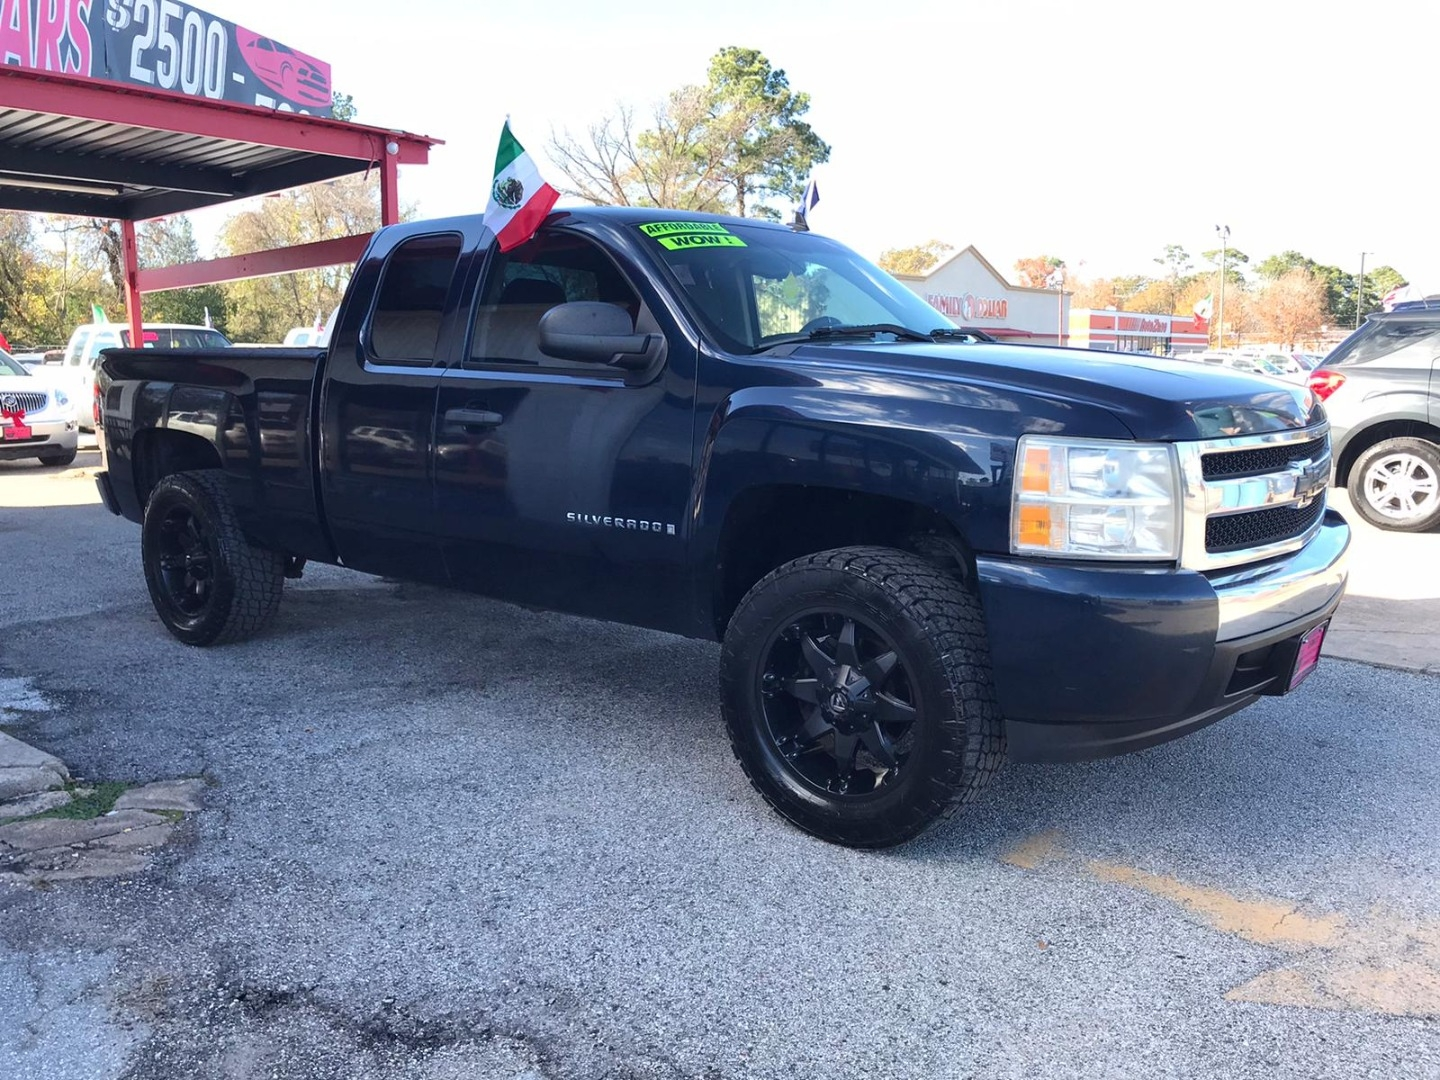 2008 Chevrolet Silverado 1500 2wd Ext Cab Lifted Mainland Investment Auto Sales Dealership In Houston